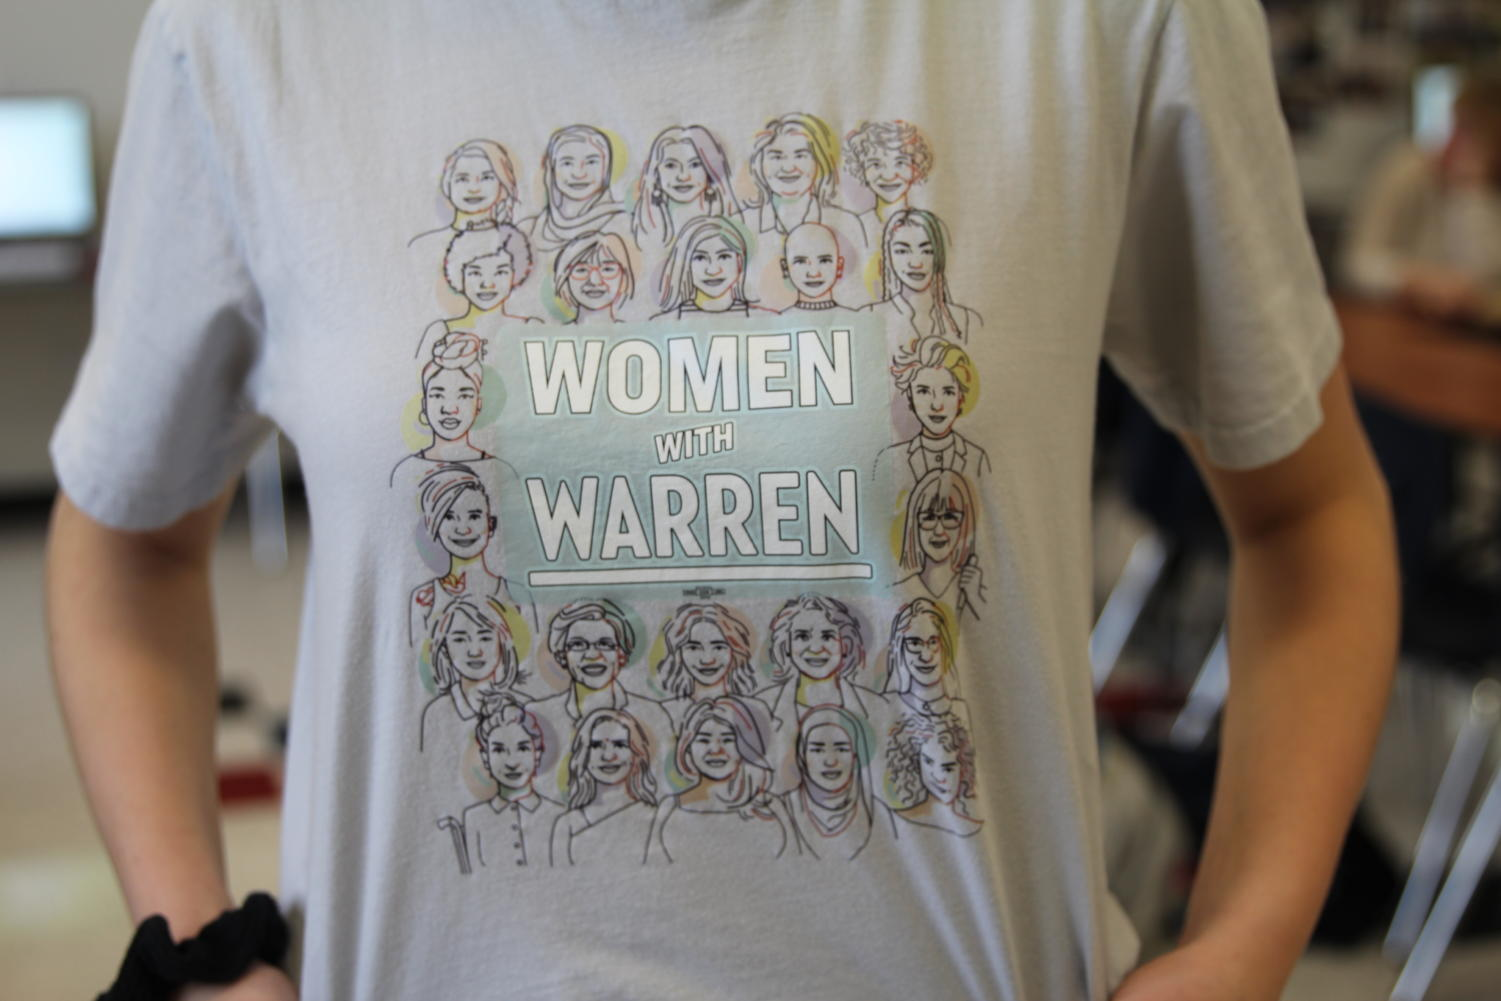 Elizabeth Warren, a democratic presidential candidate for 2020, preaches a message of equality for all women.